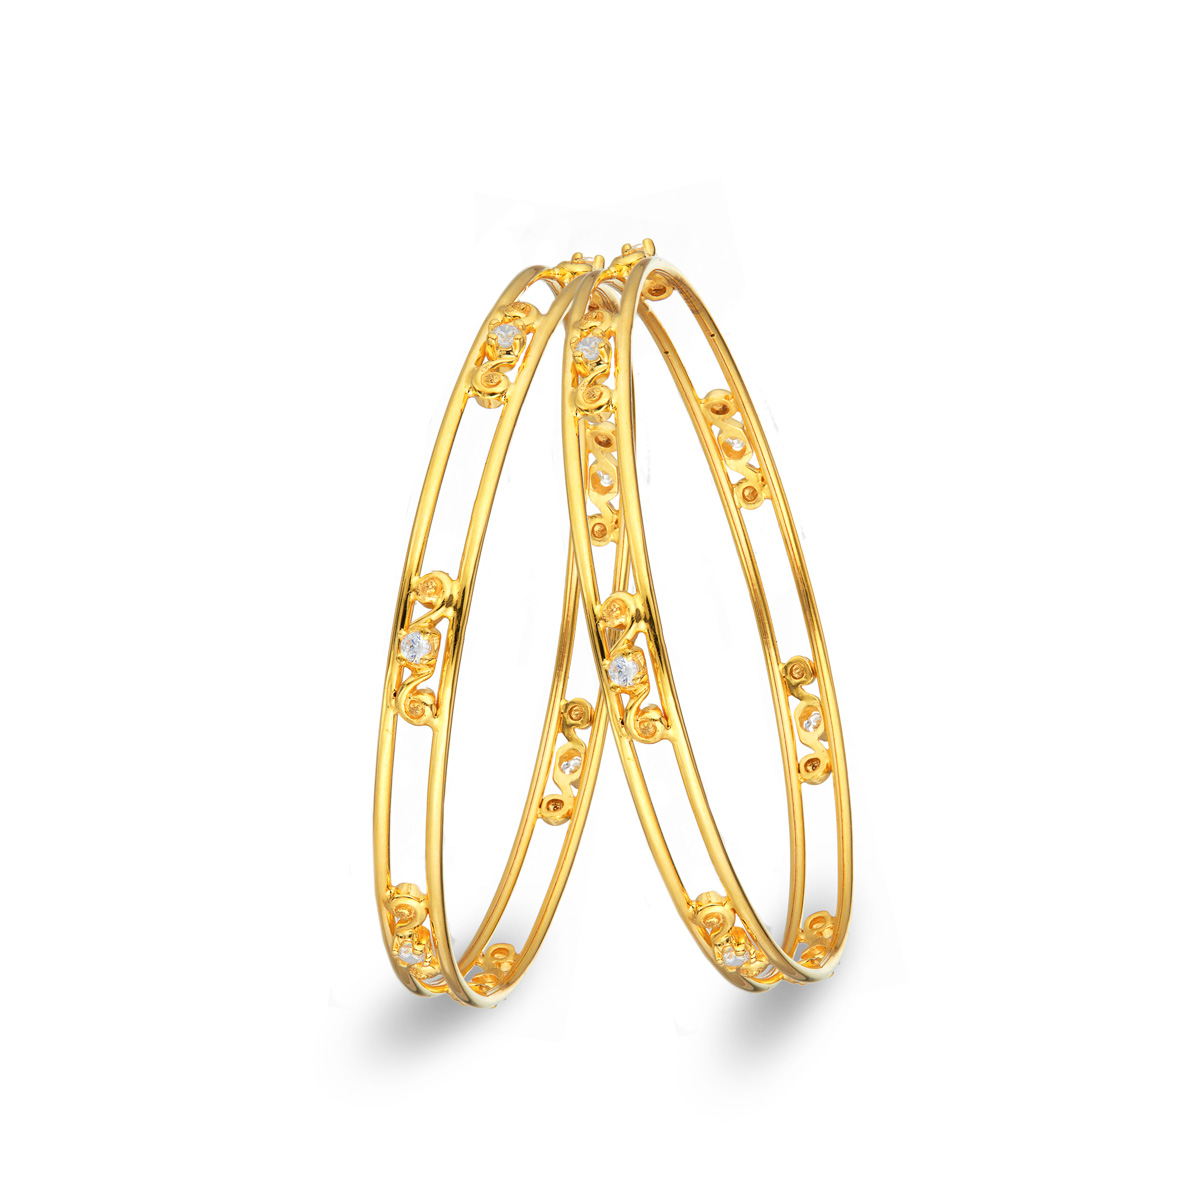 The Atryn Radiant Bangle